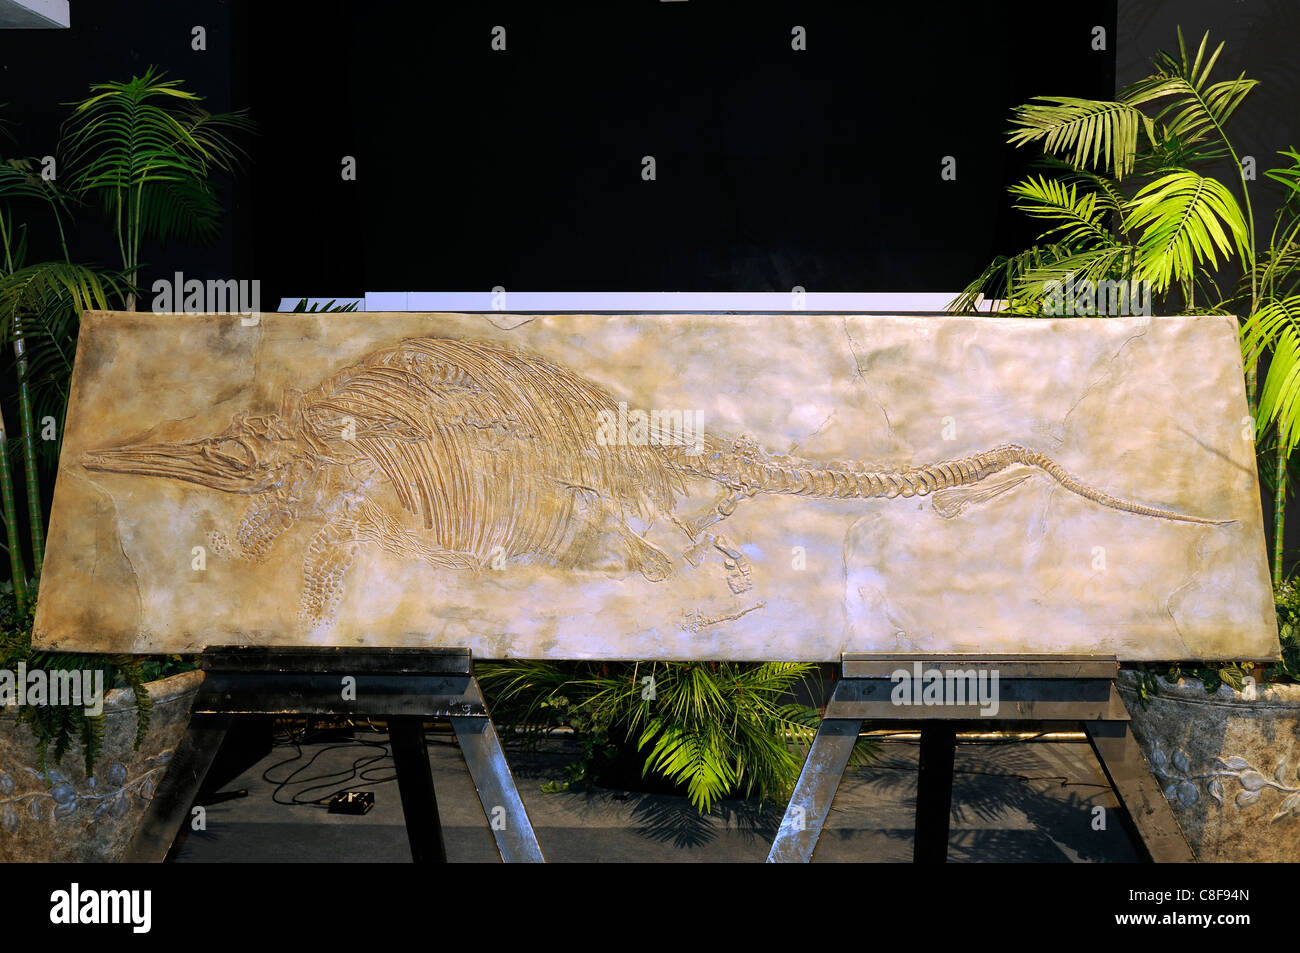 Fossil of an Ichthyosaurus, an extinct genus of ichthyosaur from the Early Jurassic period - Stock Image